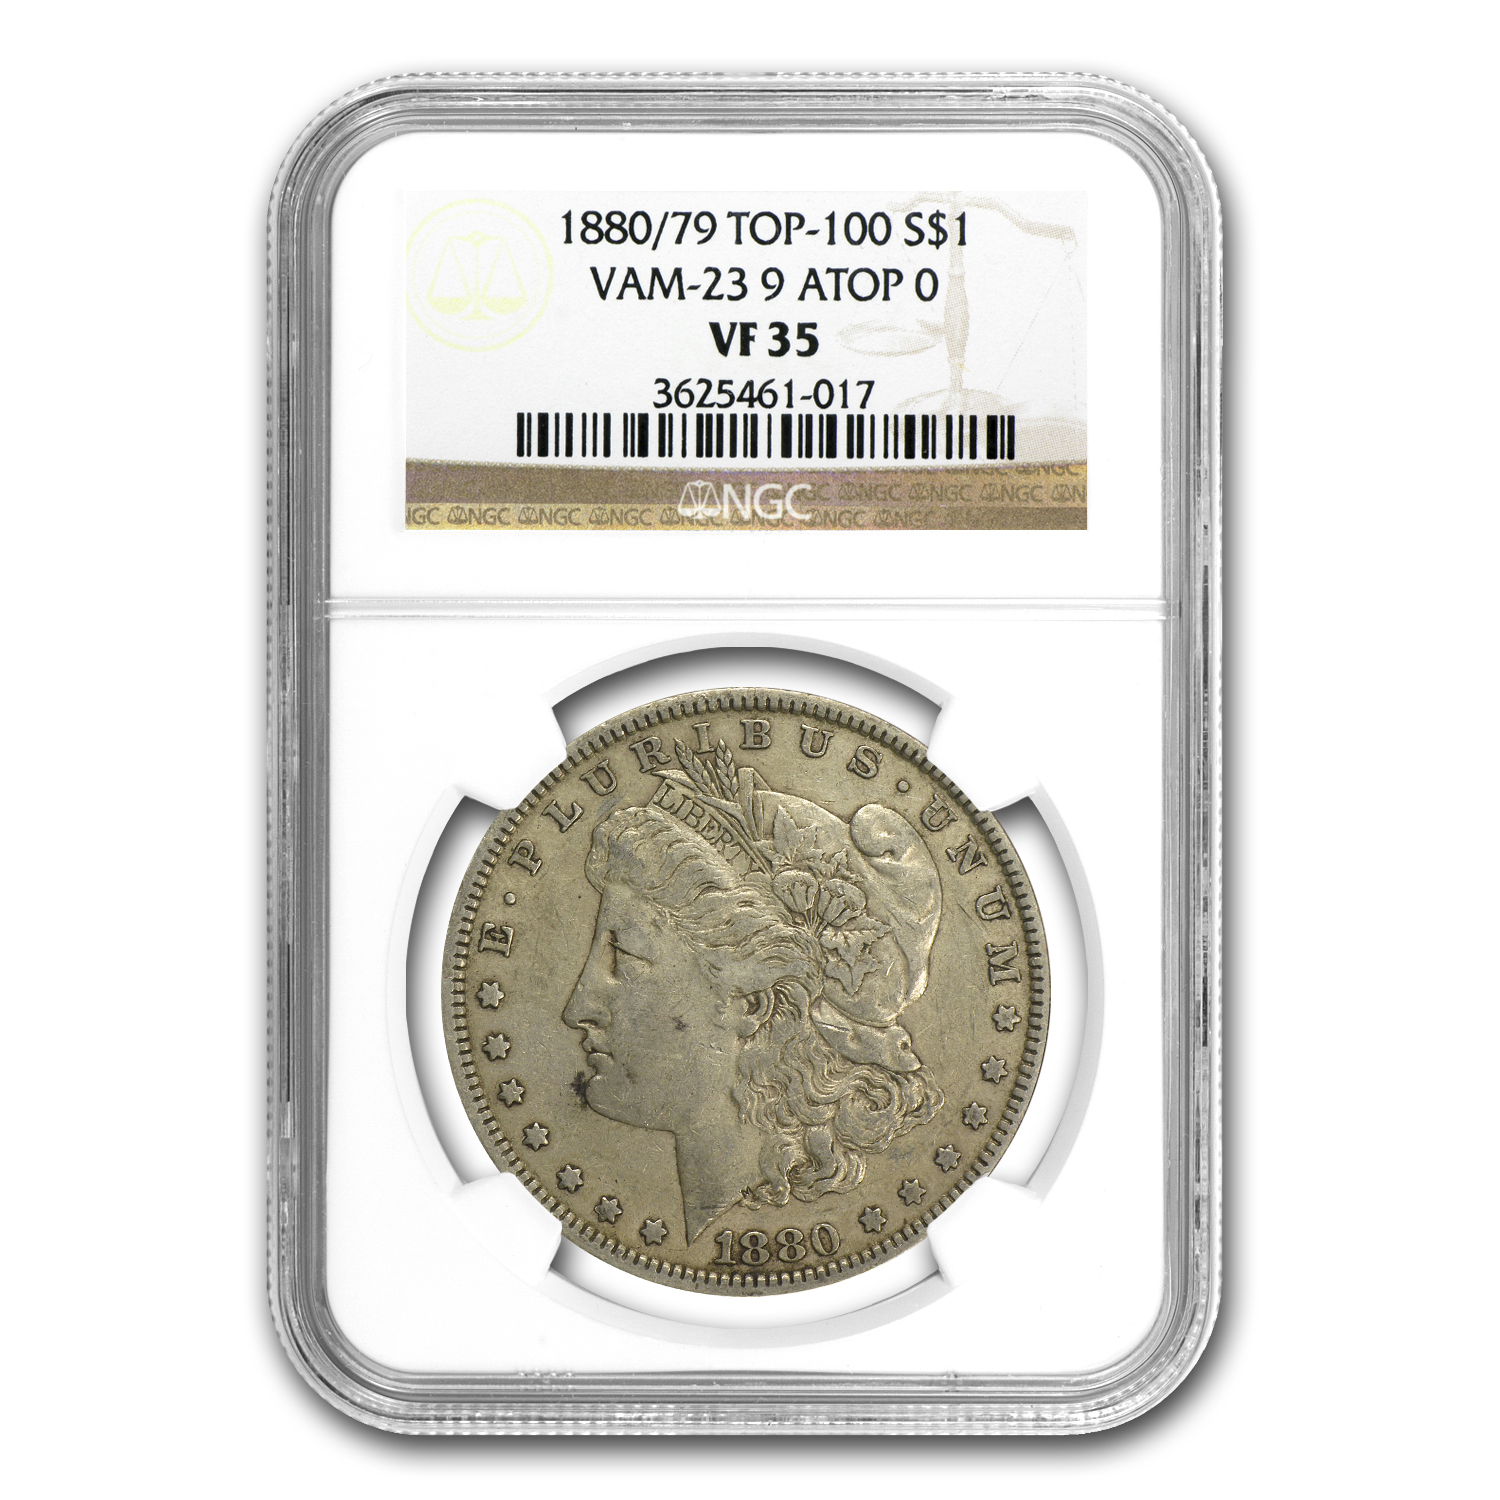 1880/79 Morgan Dollar - VF-35 NGC VAM-23 80/79 Overdate Top-100